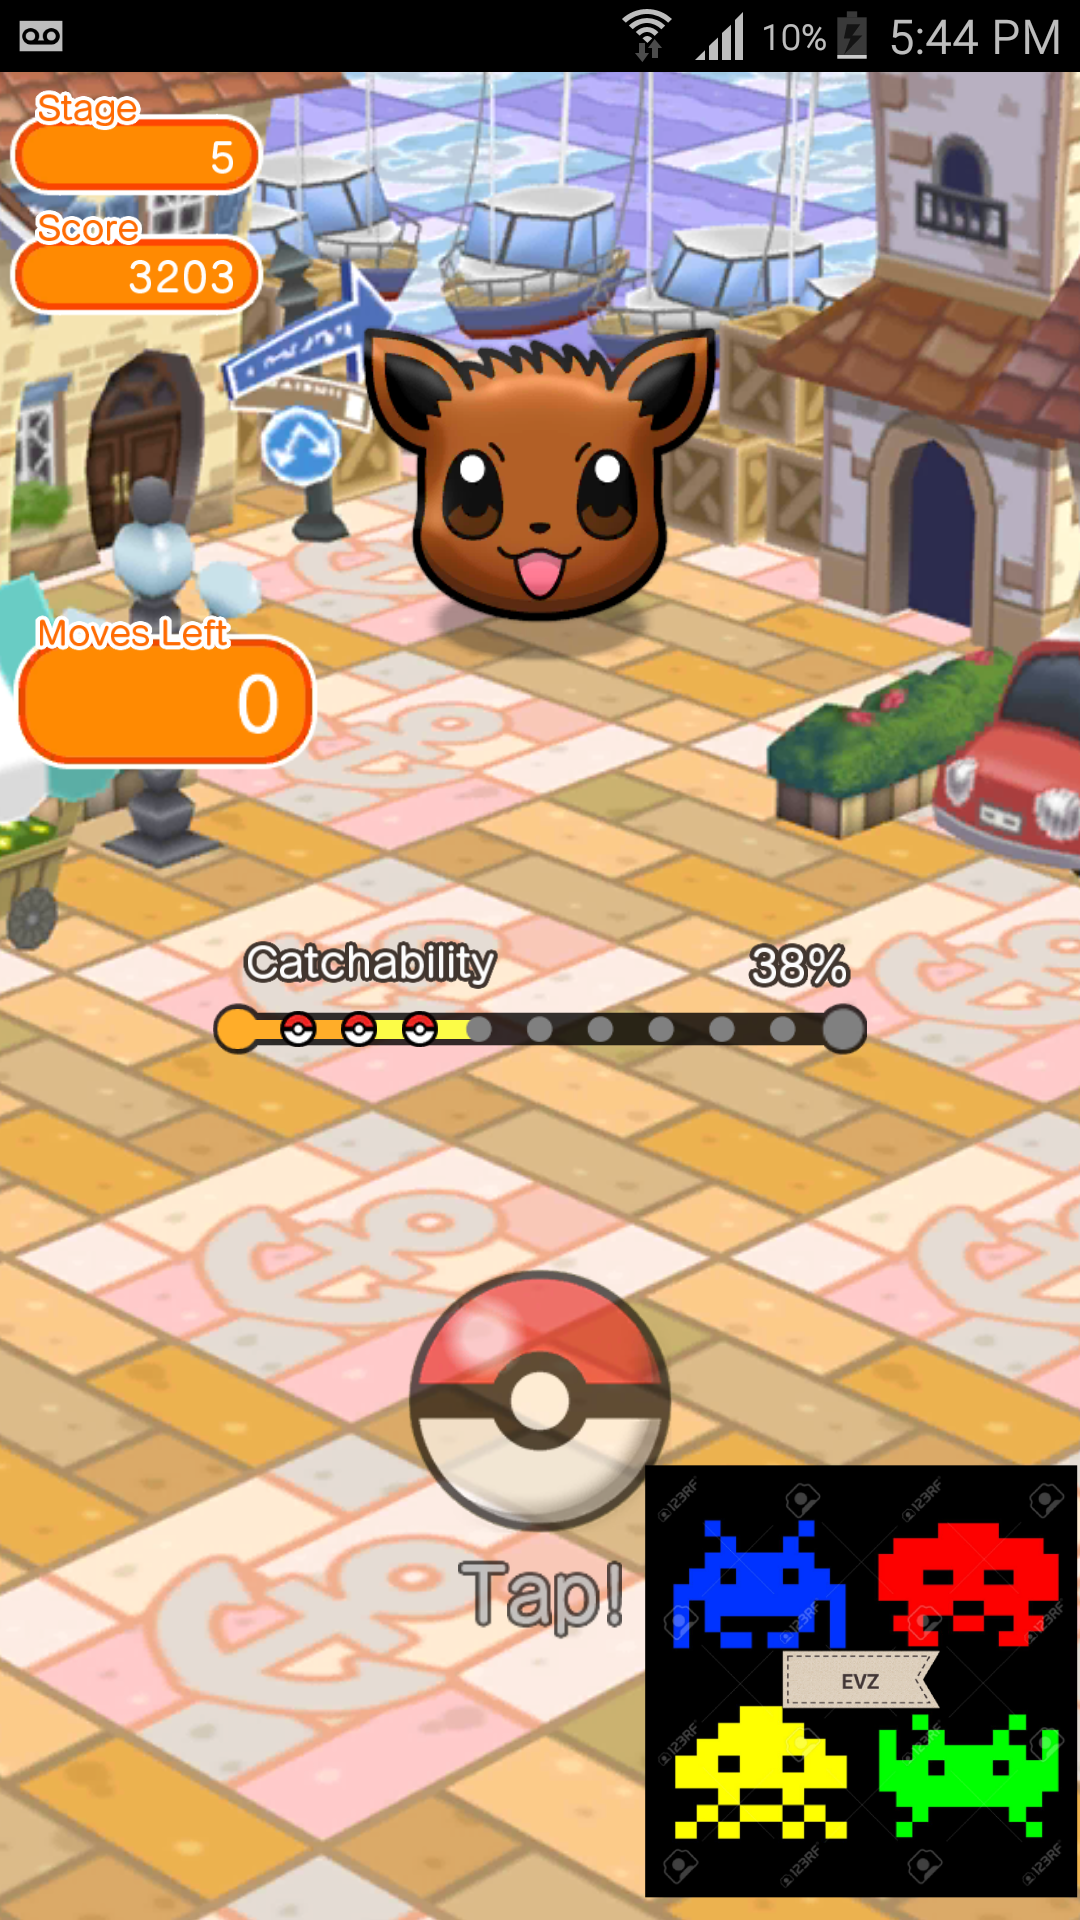 Pokemon Shuffle Mobile: Stage 005 3,203 points